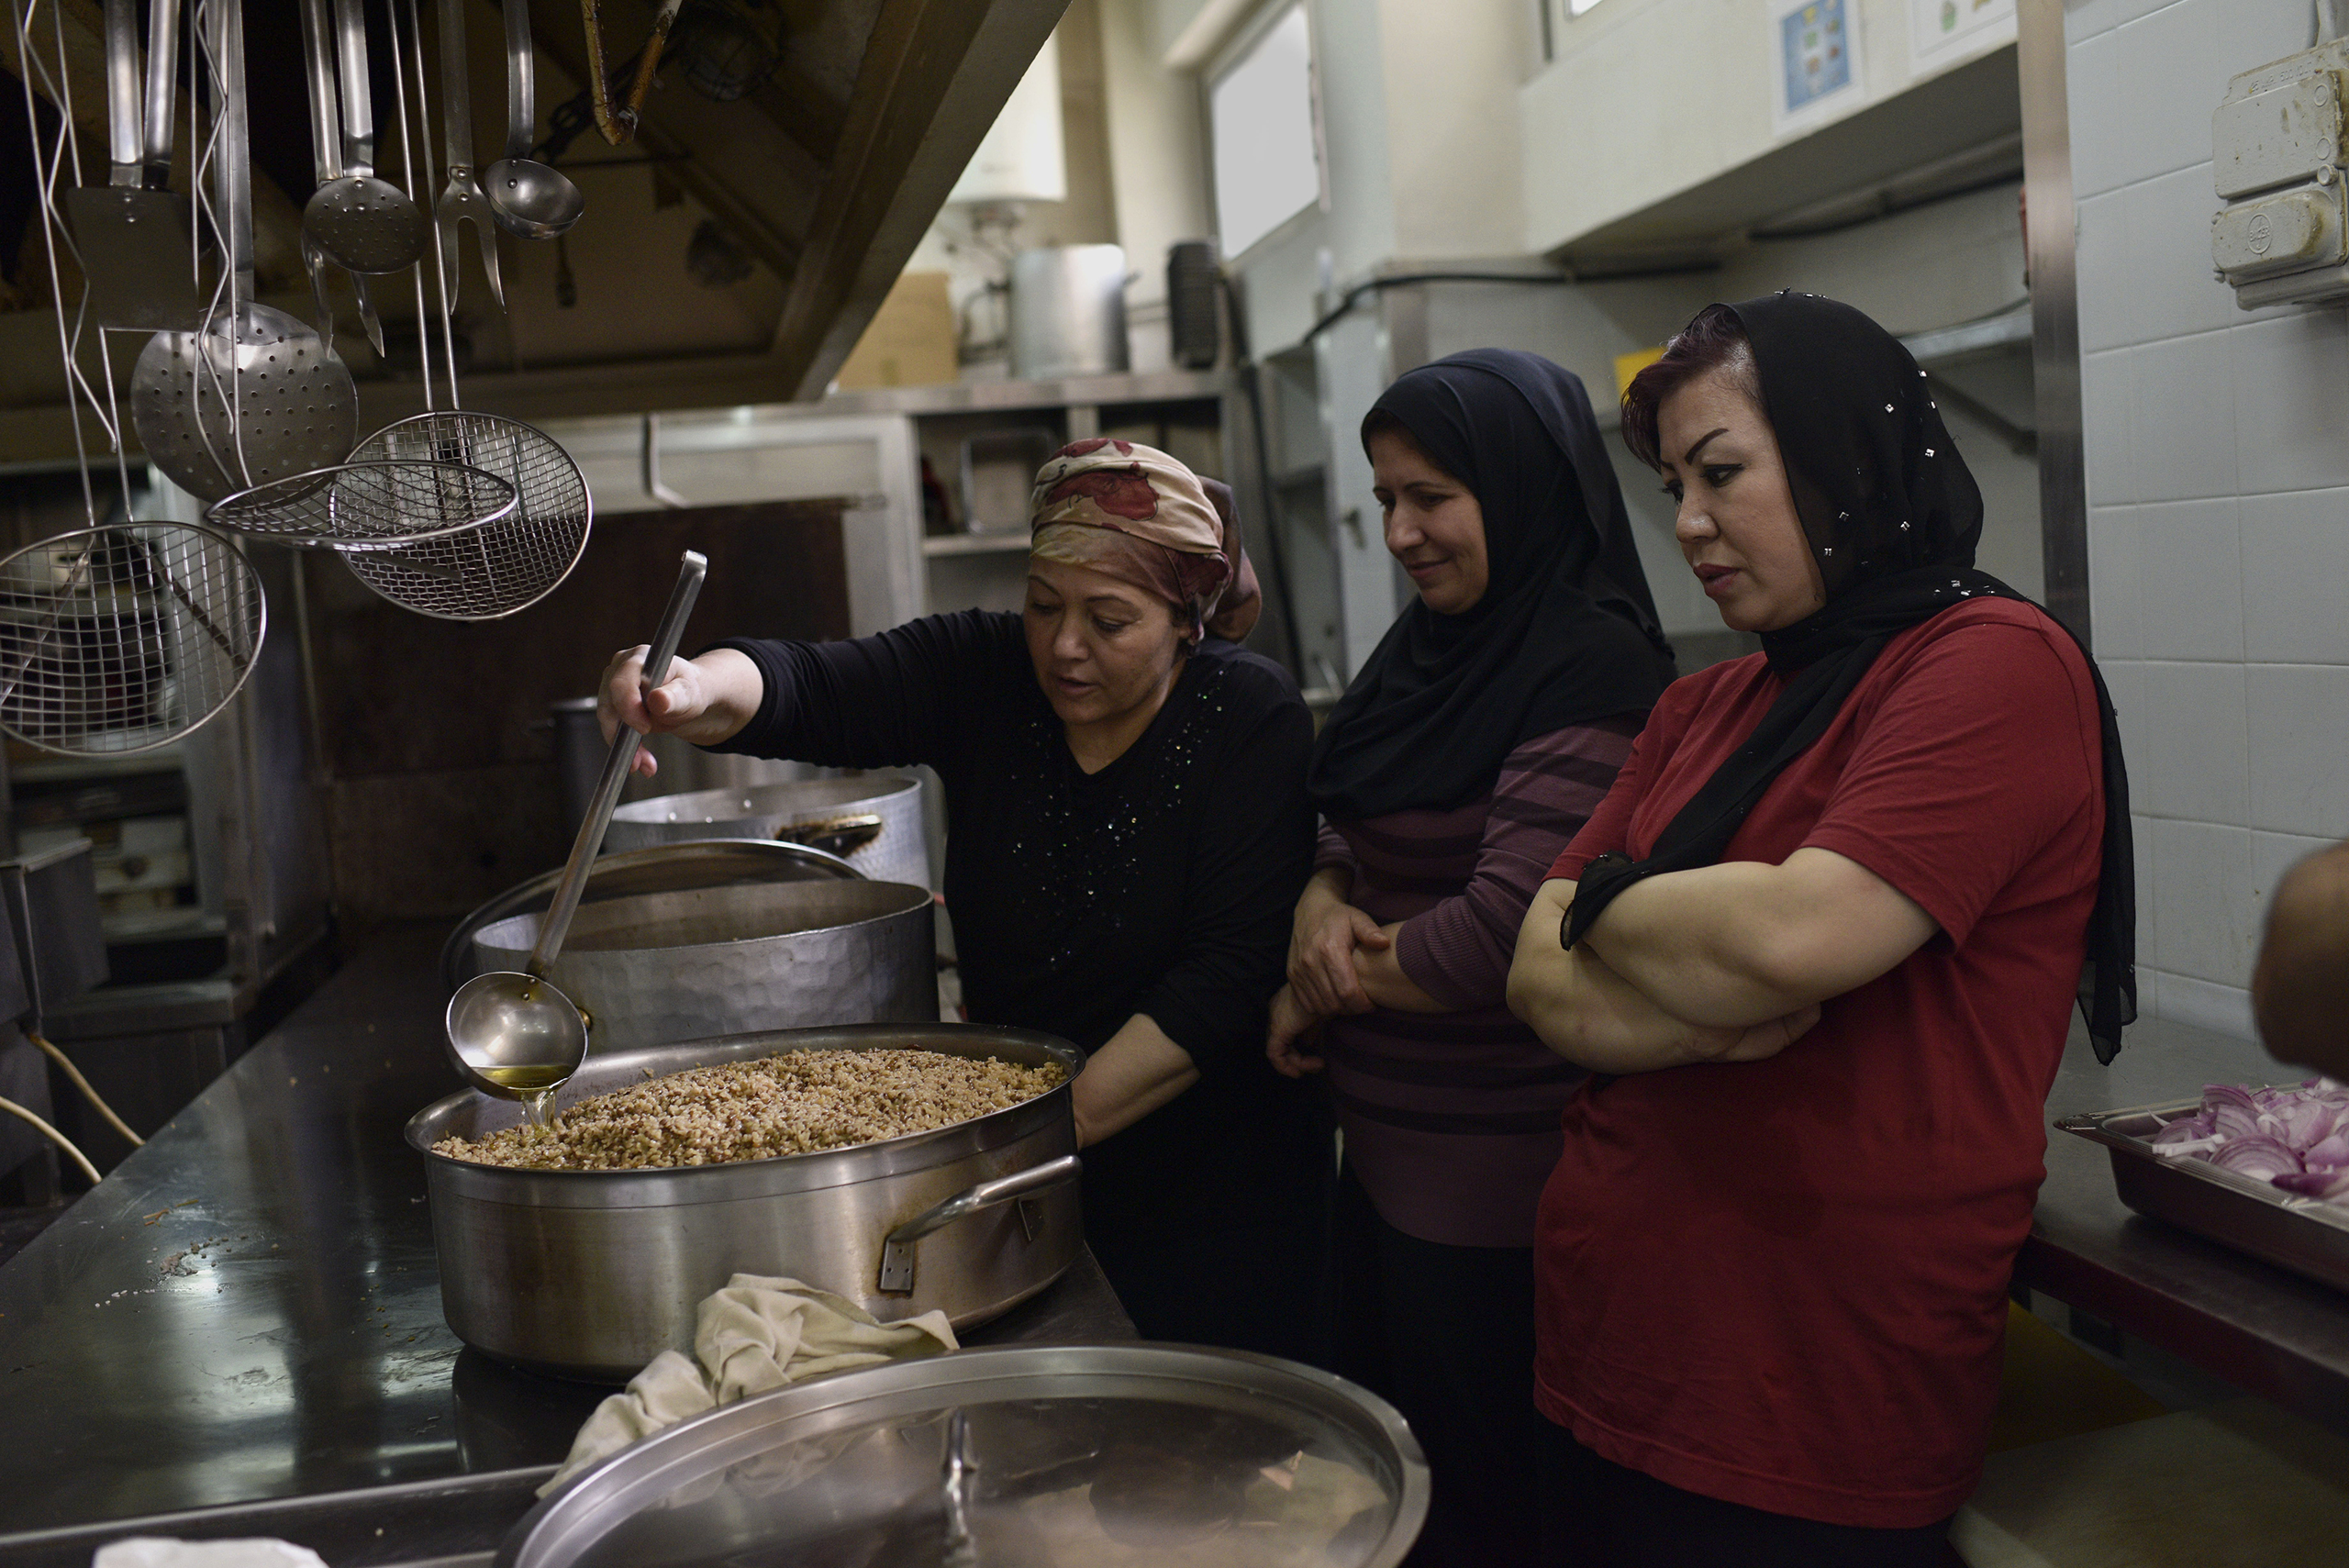 Women who made it out of some of the world's worst conflicts, like Syria and Afghanistan, cook alongside one another in the industrial kitchen of the City Plaza hotel.